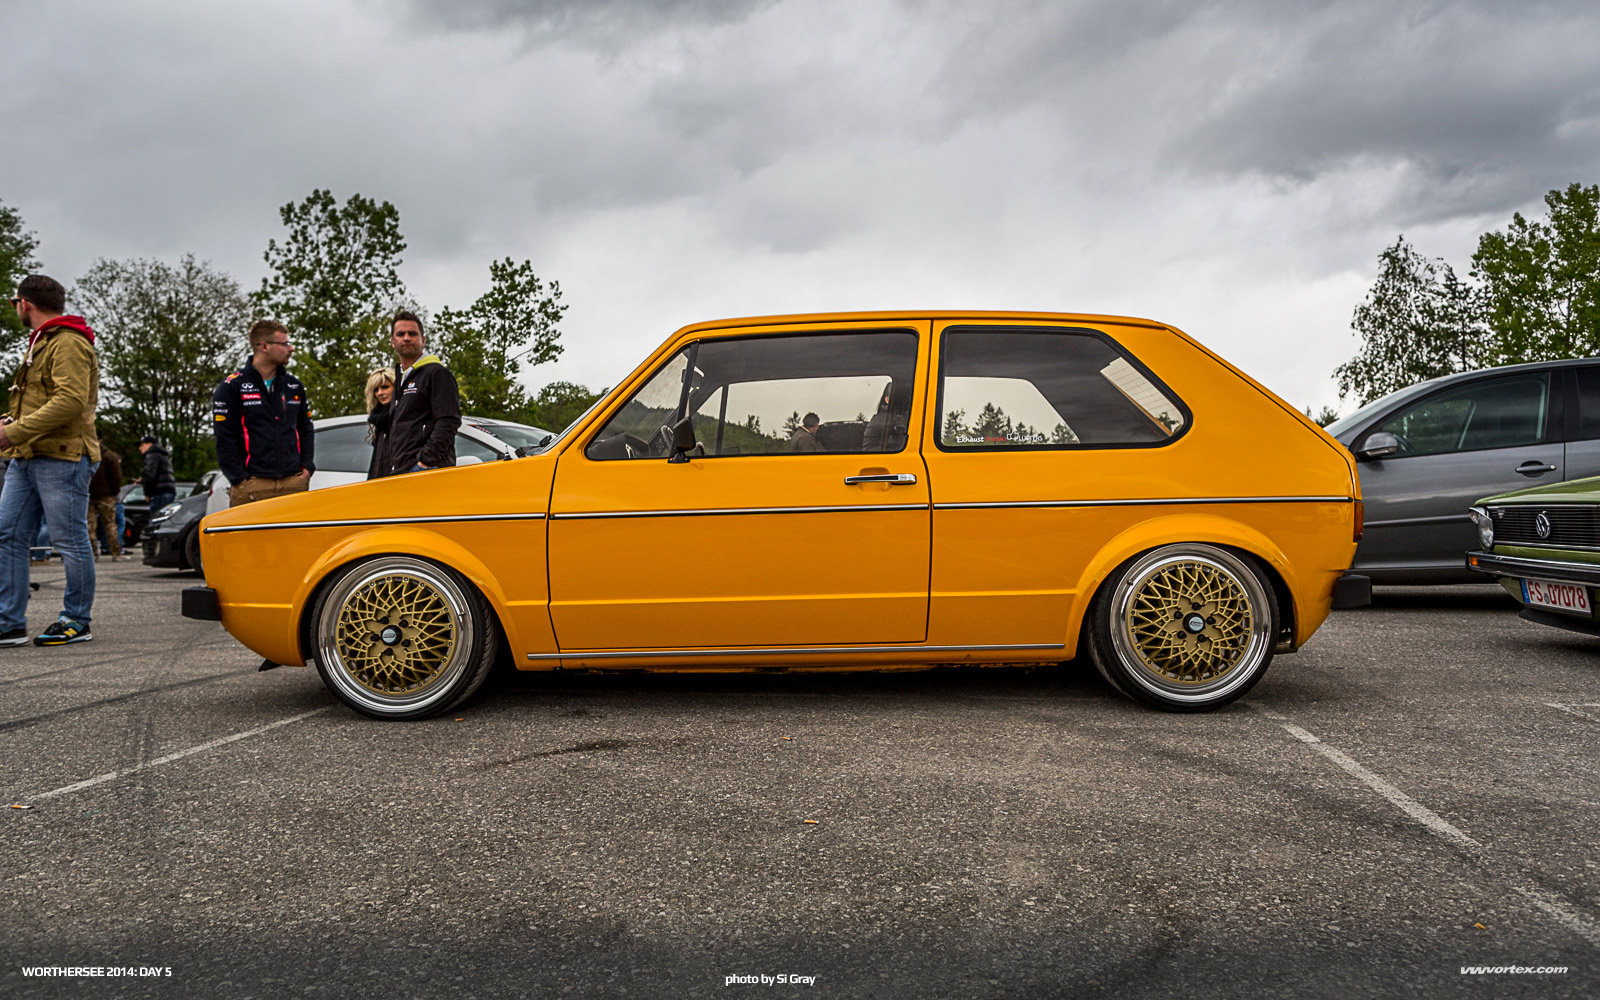 2014-Worthersee-Day-5-Si-Gray-Audi-381